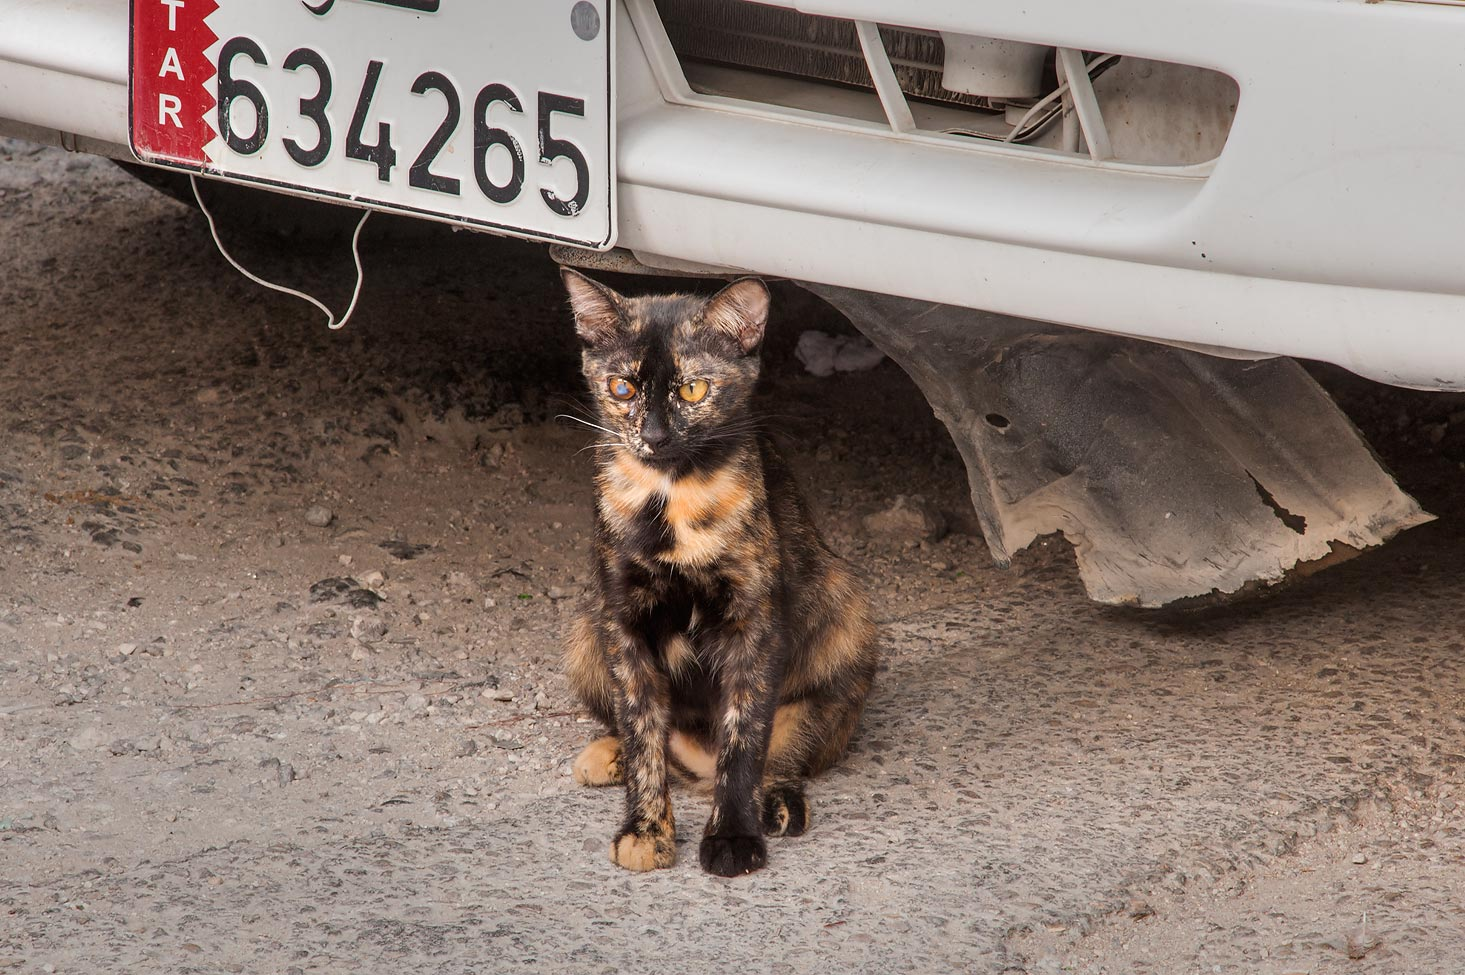 Tortoiseshell cat sitting under a car on Al Jassasiya St., Musheirib area. Doha, Qatar